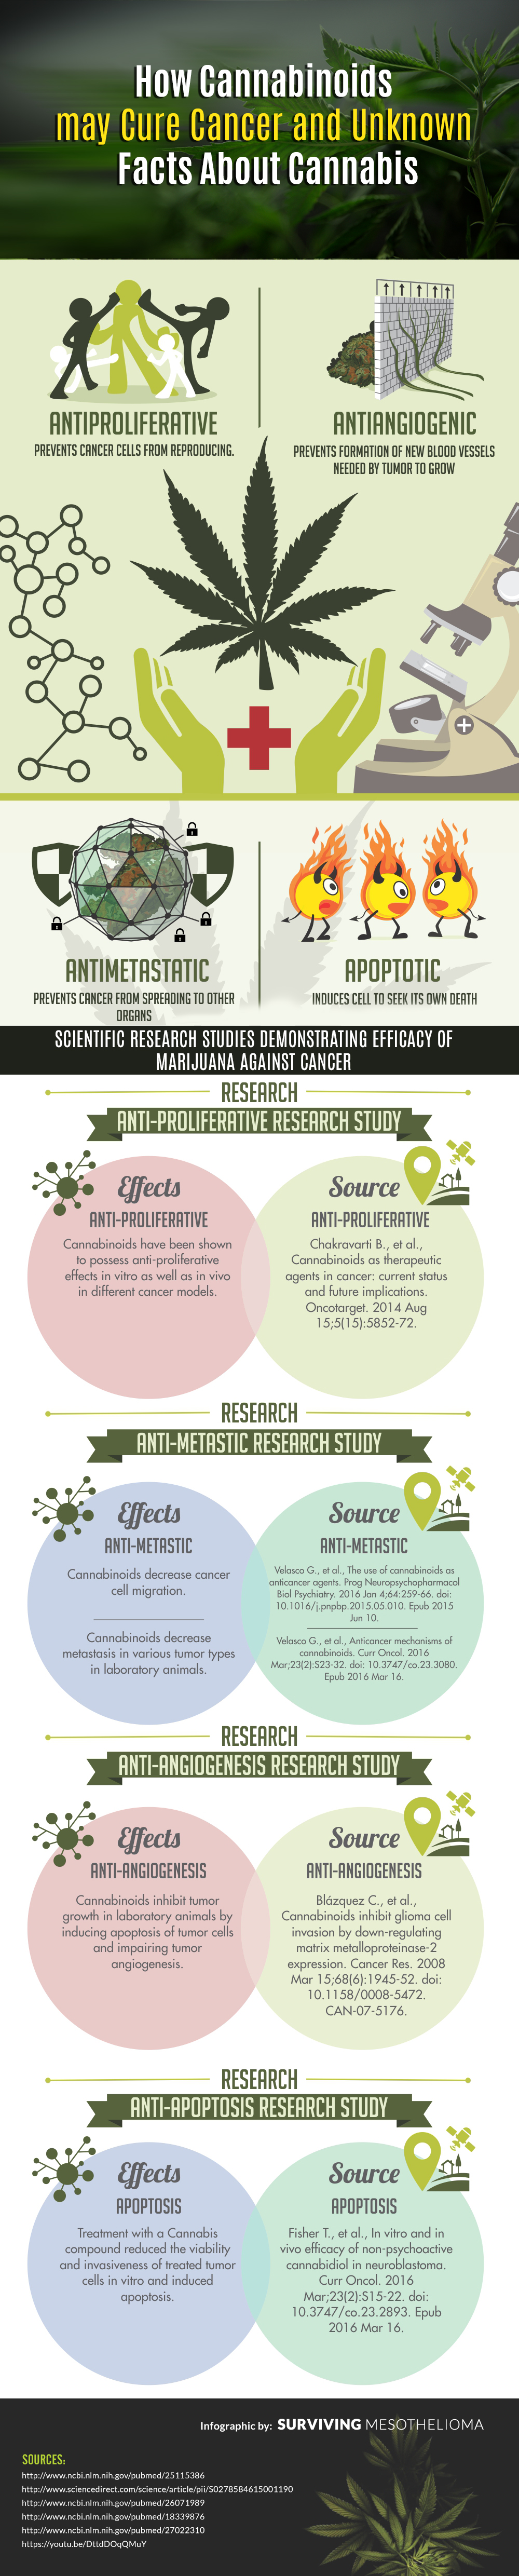 How Cannabis May Cure Cancer